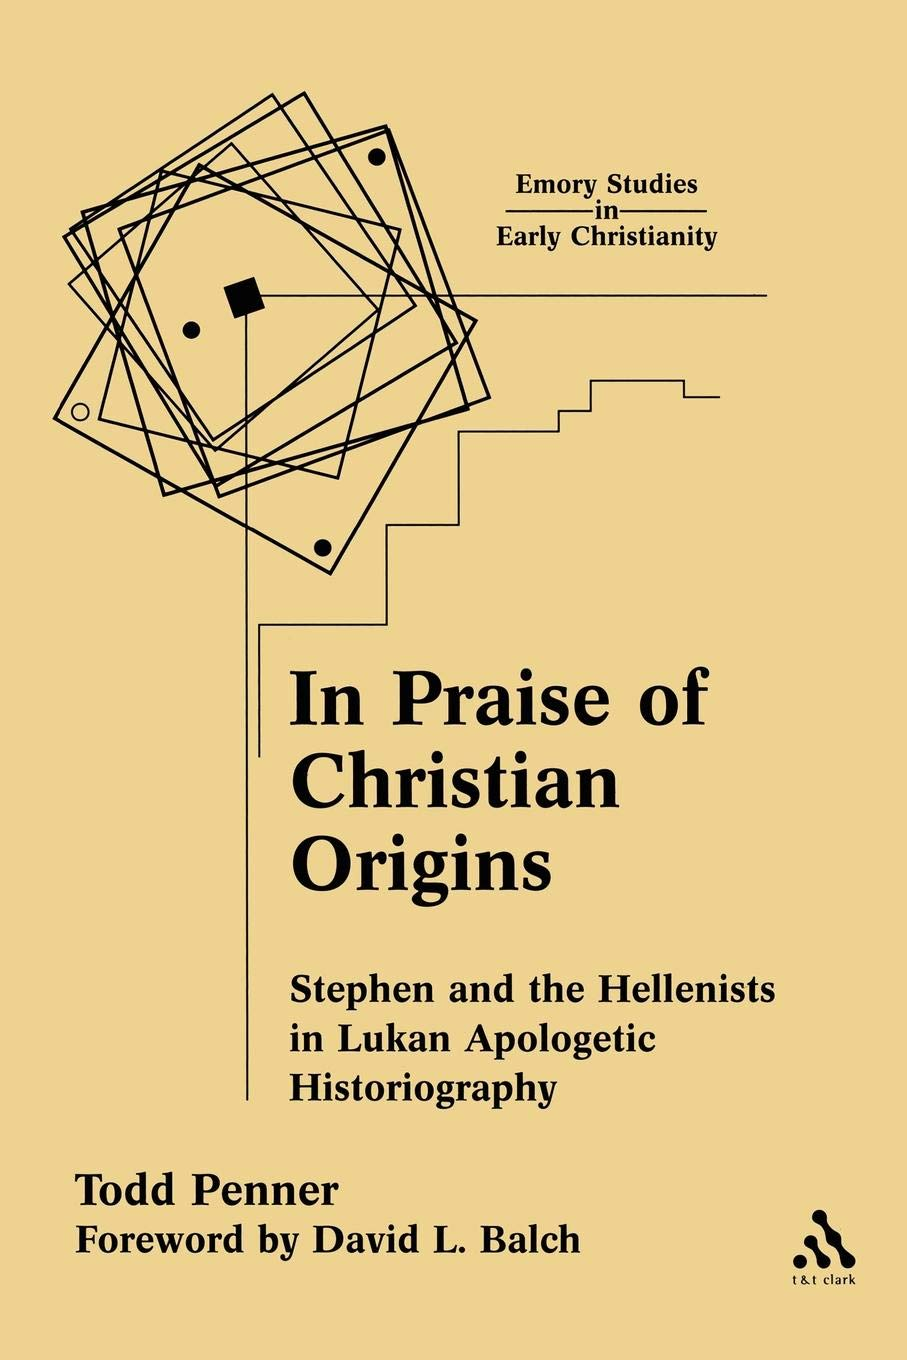 Download In Praise of Christian Origins: Stephen and the Hellenists in Lukan Apologetic Historiography (Emory Studies in Early Christianity) ebook